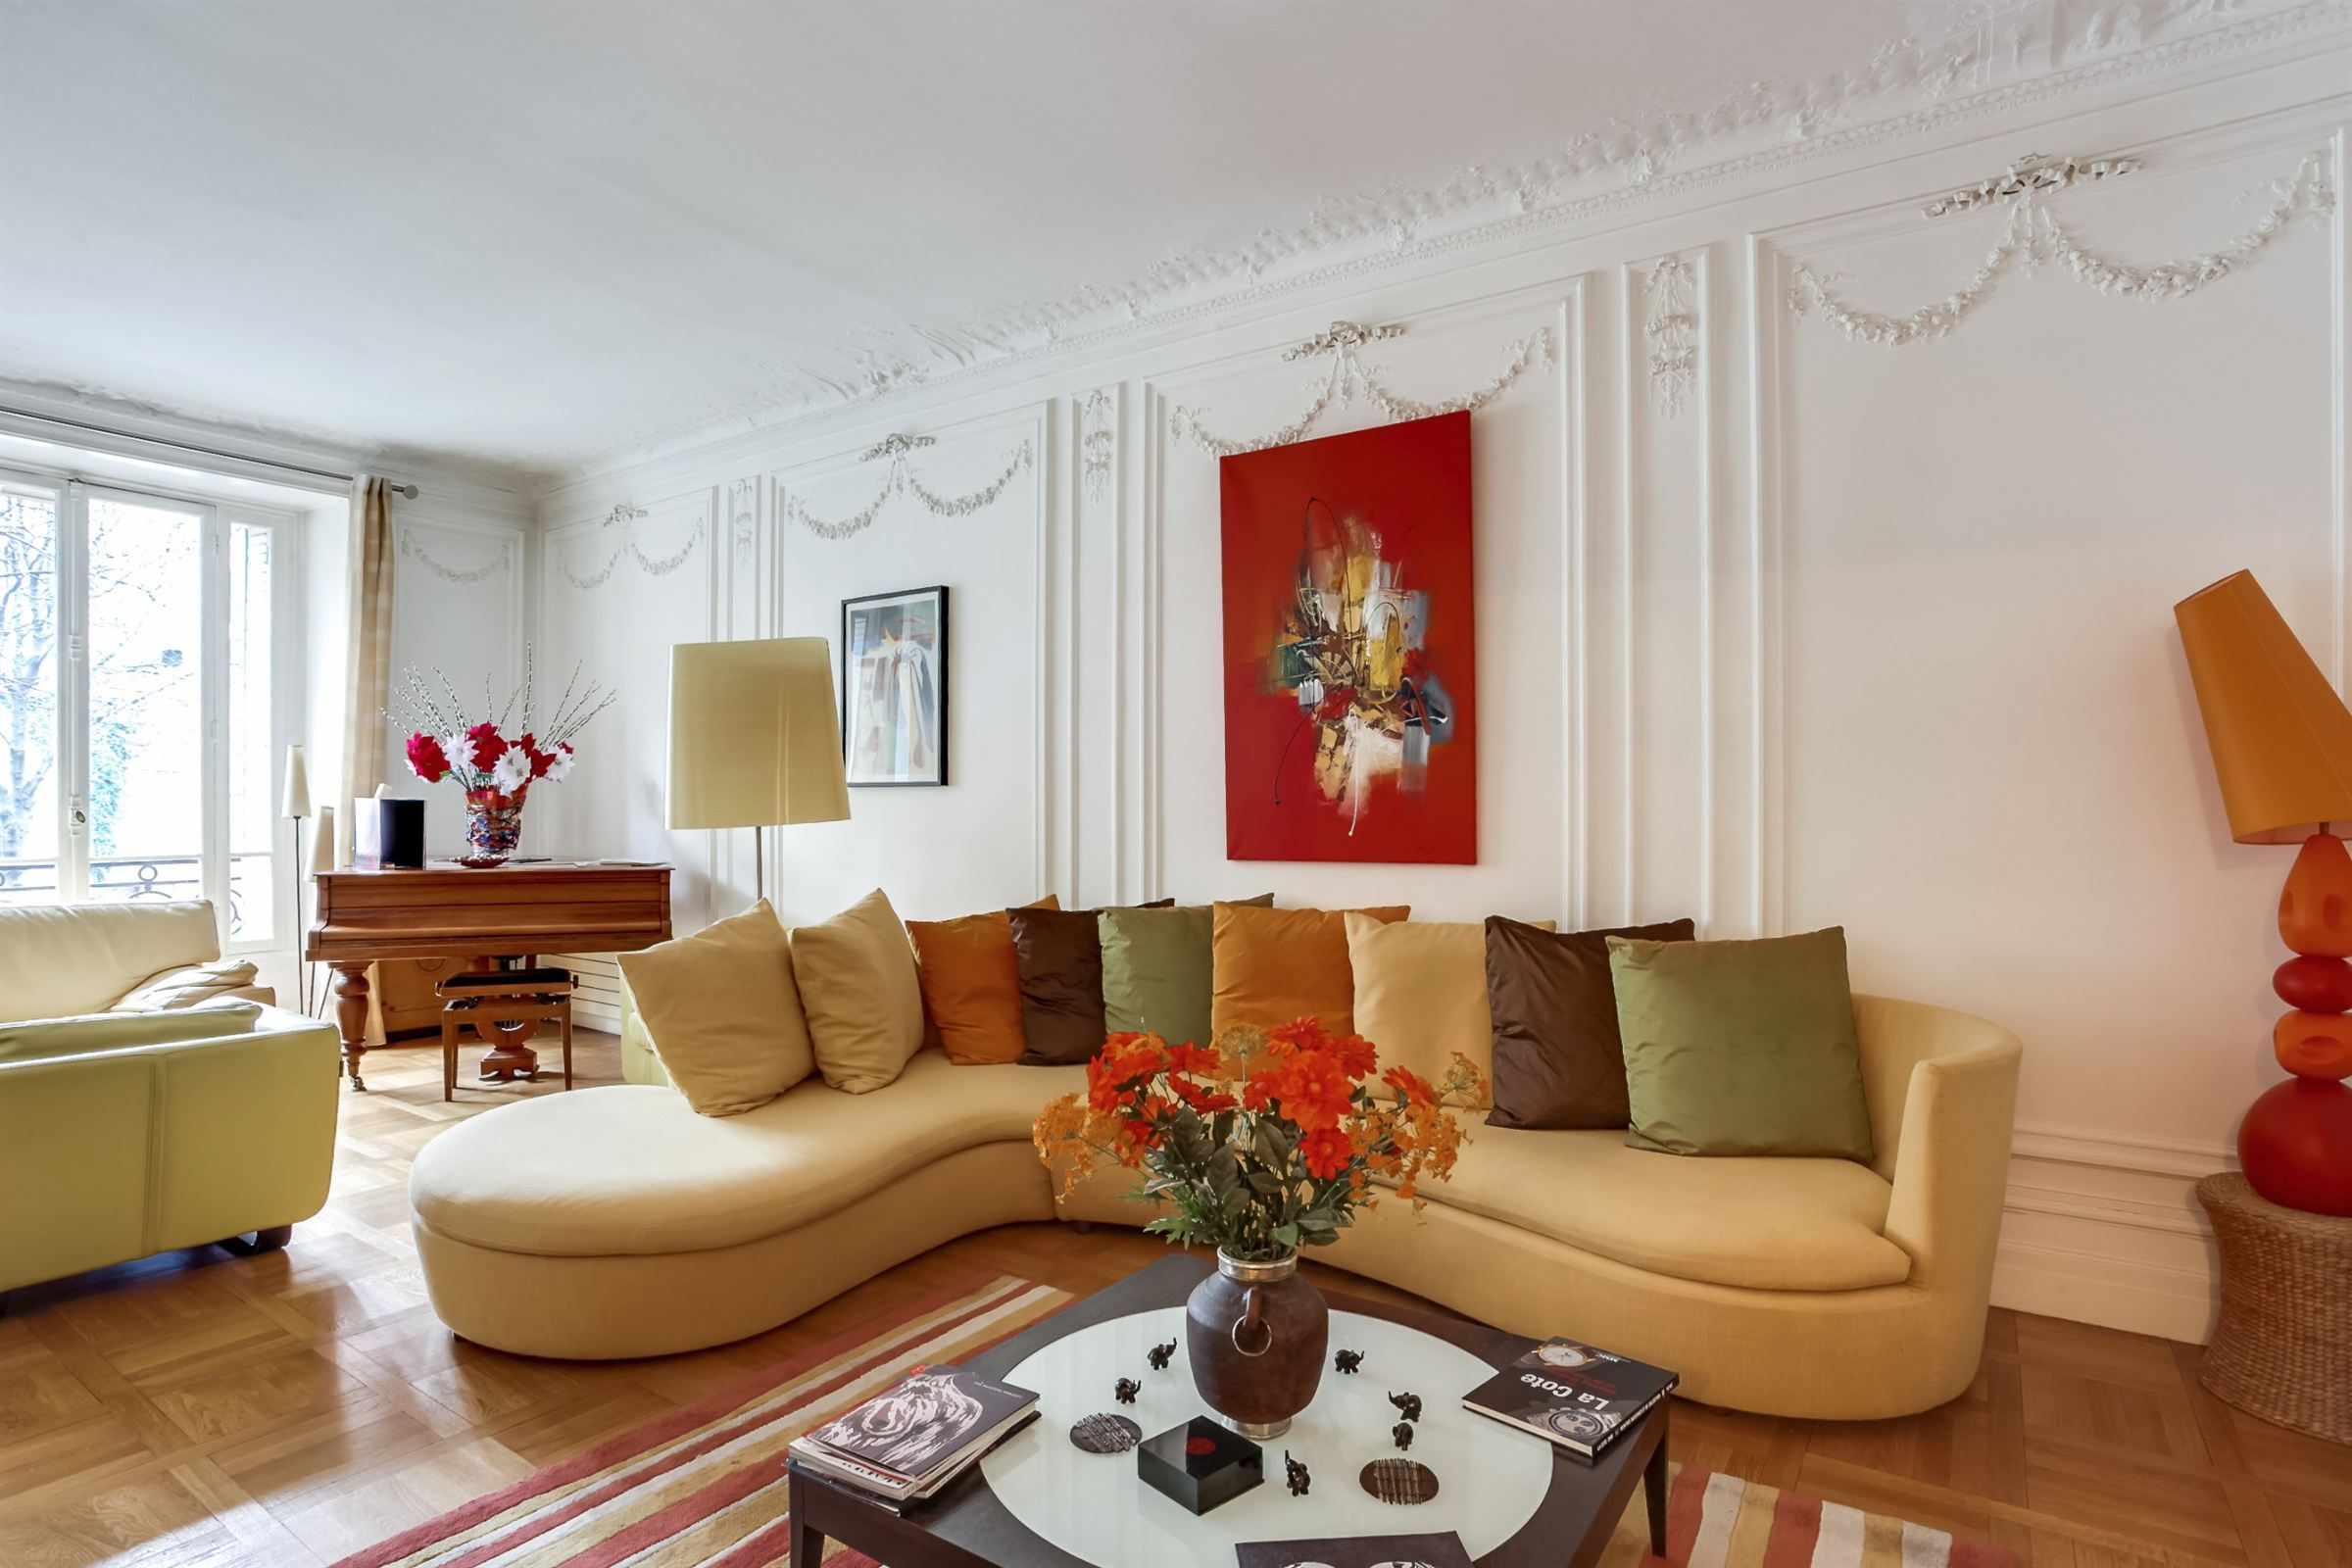 sales property at A 225 sq.m apartment for sale Paris 16 - Place de Costa Rica, 4 bedrooms